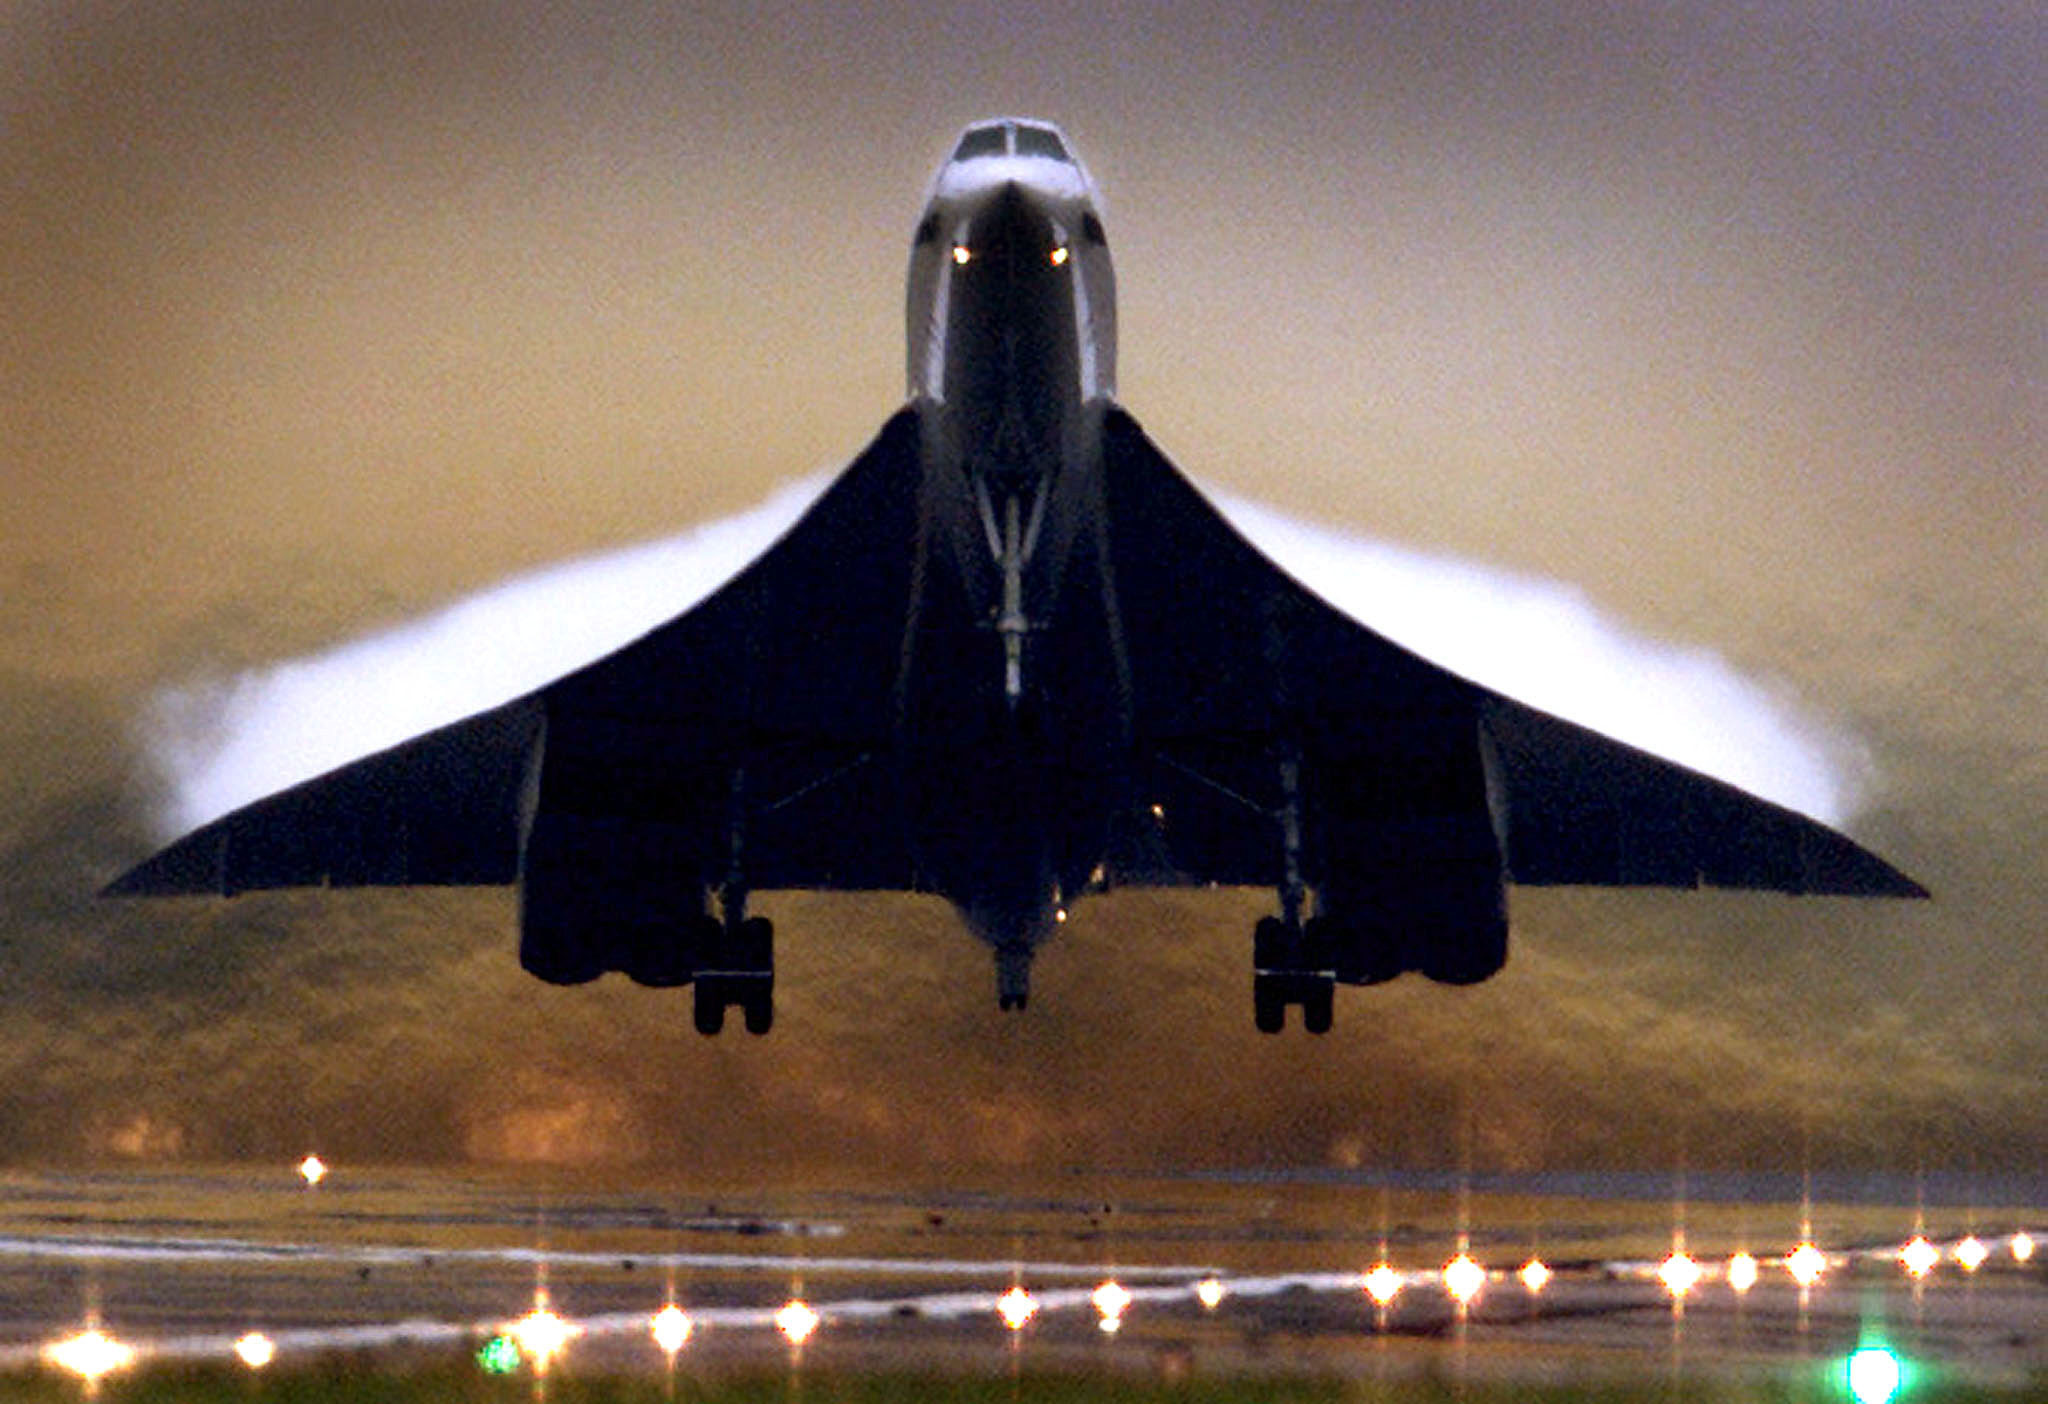 Vapour trails appear on the wings of a British Airways Concorde supersonic aircraft as it takes off from London's Heathrow airport July 24, 2000